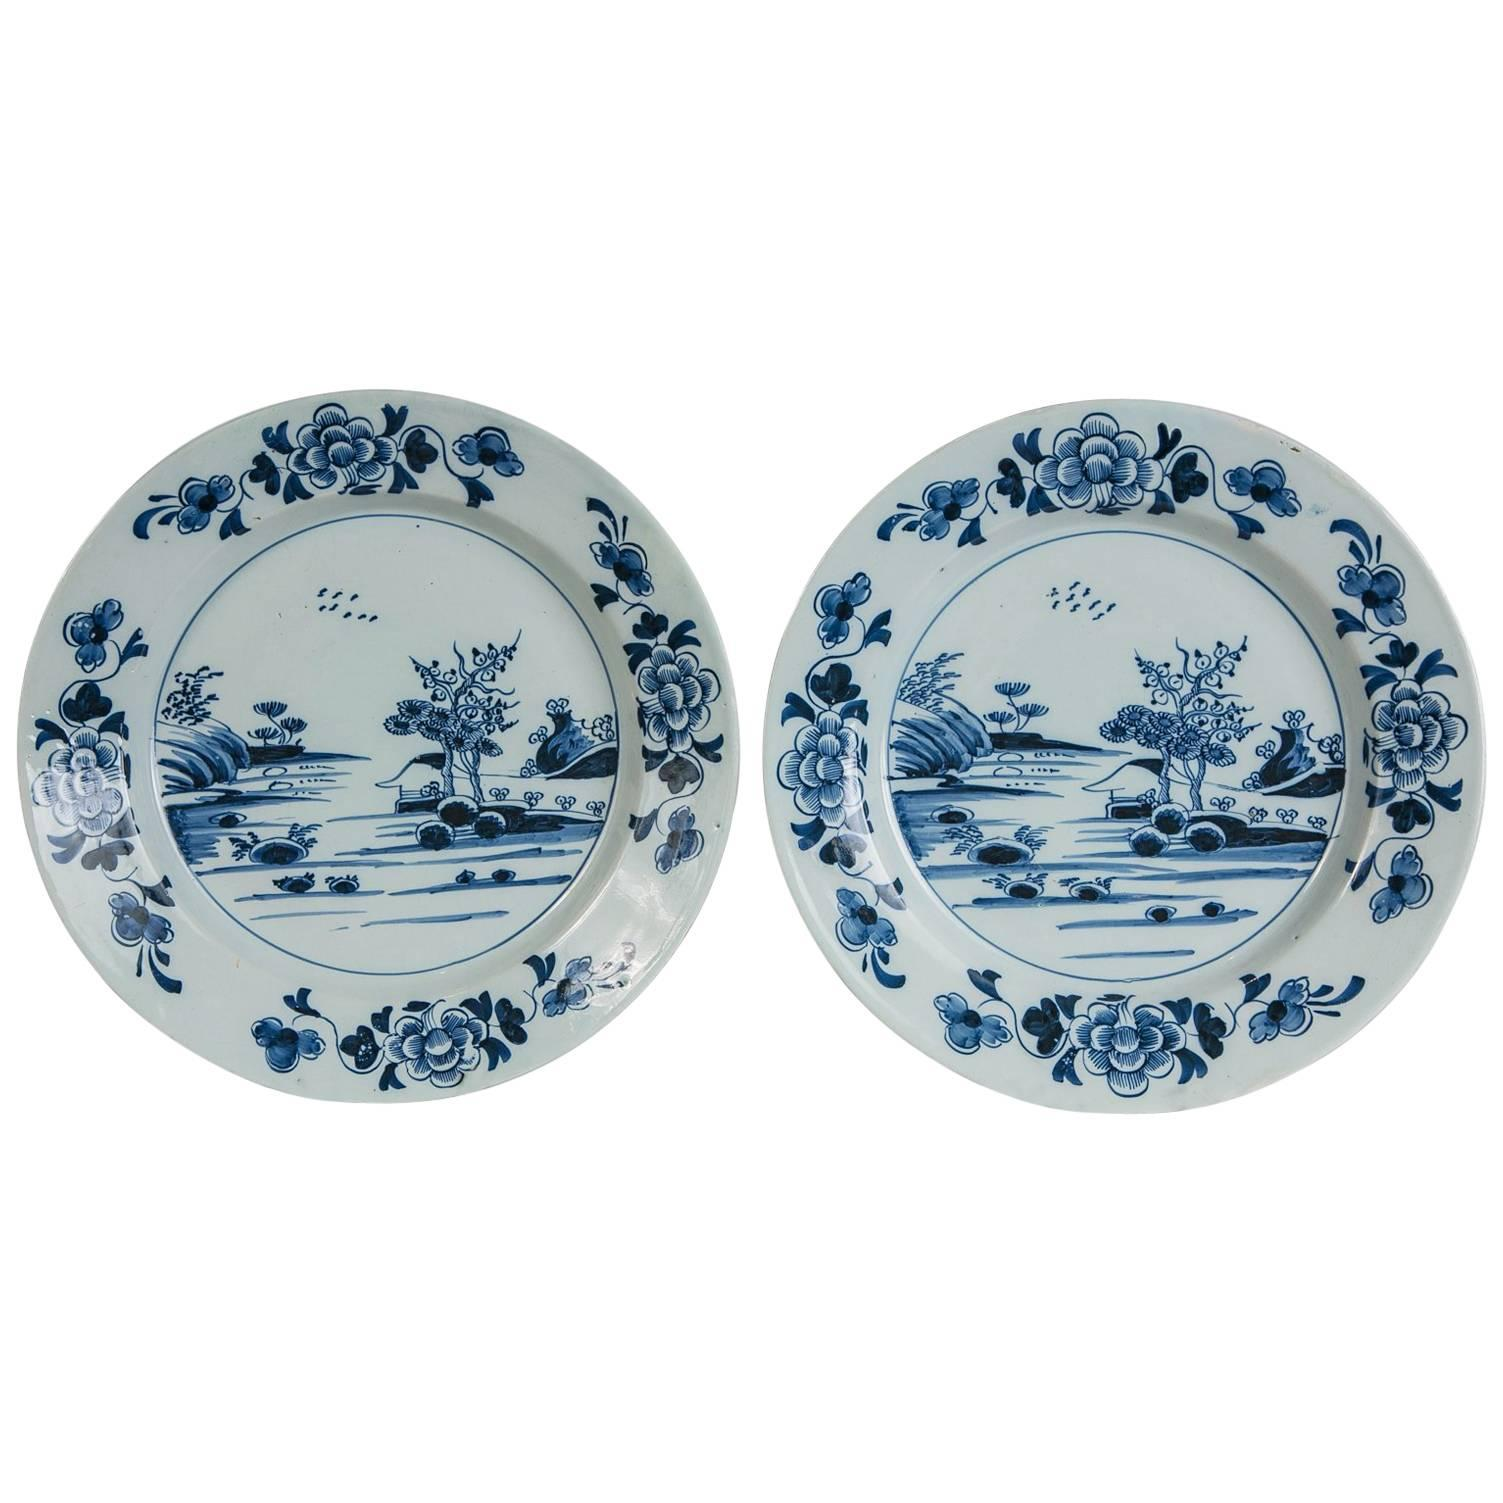 Pair Delft Blue and White Chargers Made circa 1770